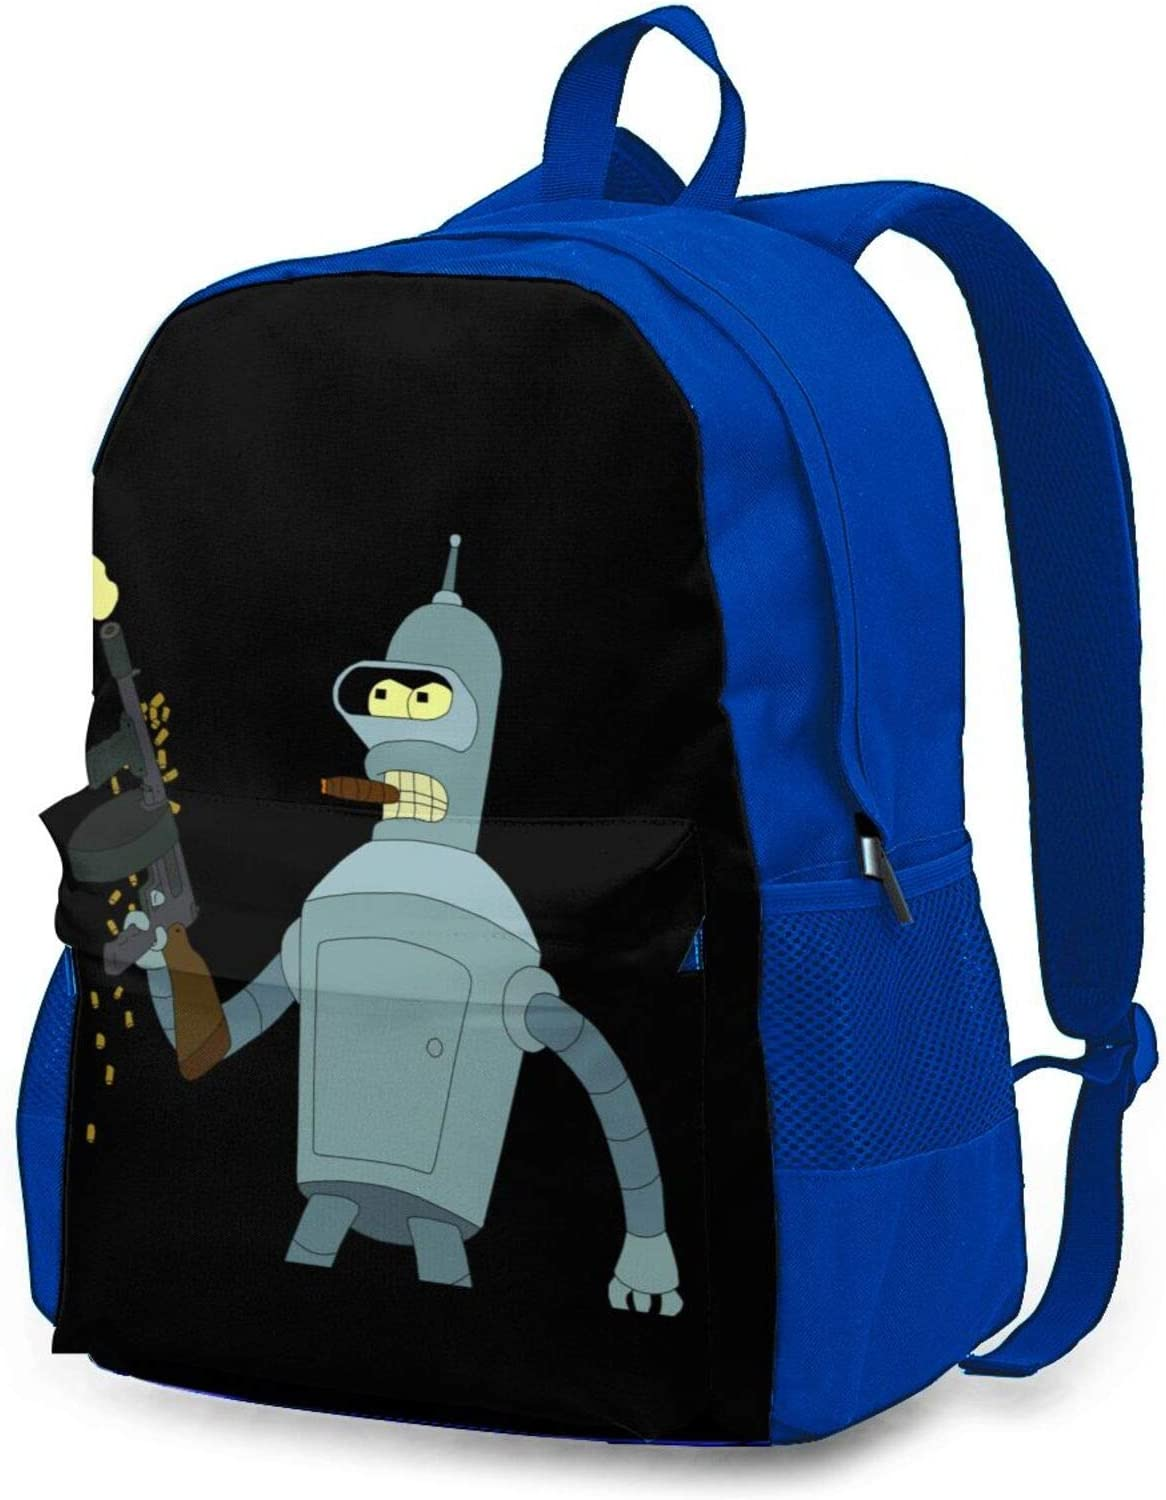 Teens 2021 spring and summer new Adults Futurama Backpack Limited price sale Travel Daypacks Anime Bookbag Cas